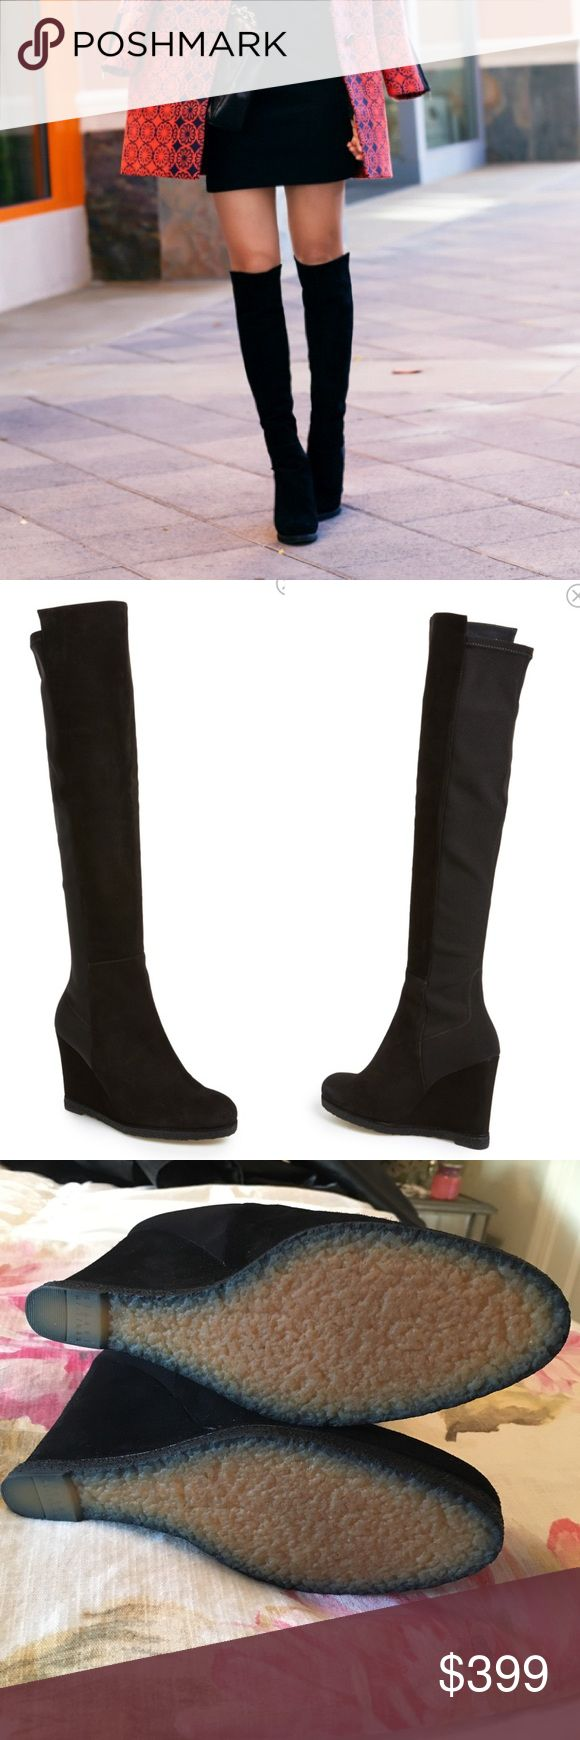 Stuart Weitzman Demiswoon Over the Knee Wedge Boot Only worn a handful of times. Size 7.5. Gorgeous black suede, wedge heel style. Very chic boots! Stretch back to ensure easy fit. Bottoms are basically unworn (texture is what these boots have when brand new). Made in Spain. No original box (I stand all my boots with display stands on a shelf, however I do have a suede duster I will ship the boots in 😘 Tags: Demi swoon heels heeled boot boots over the knee style lowland highland platform…